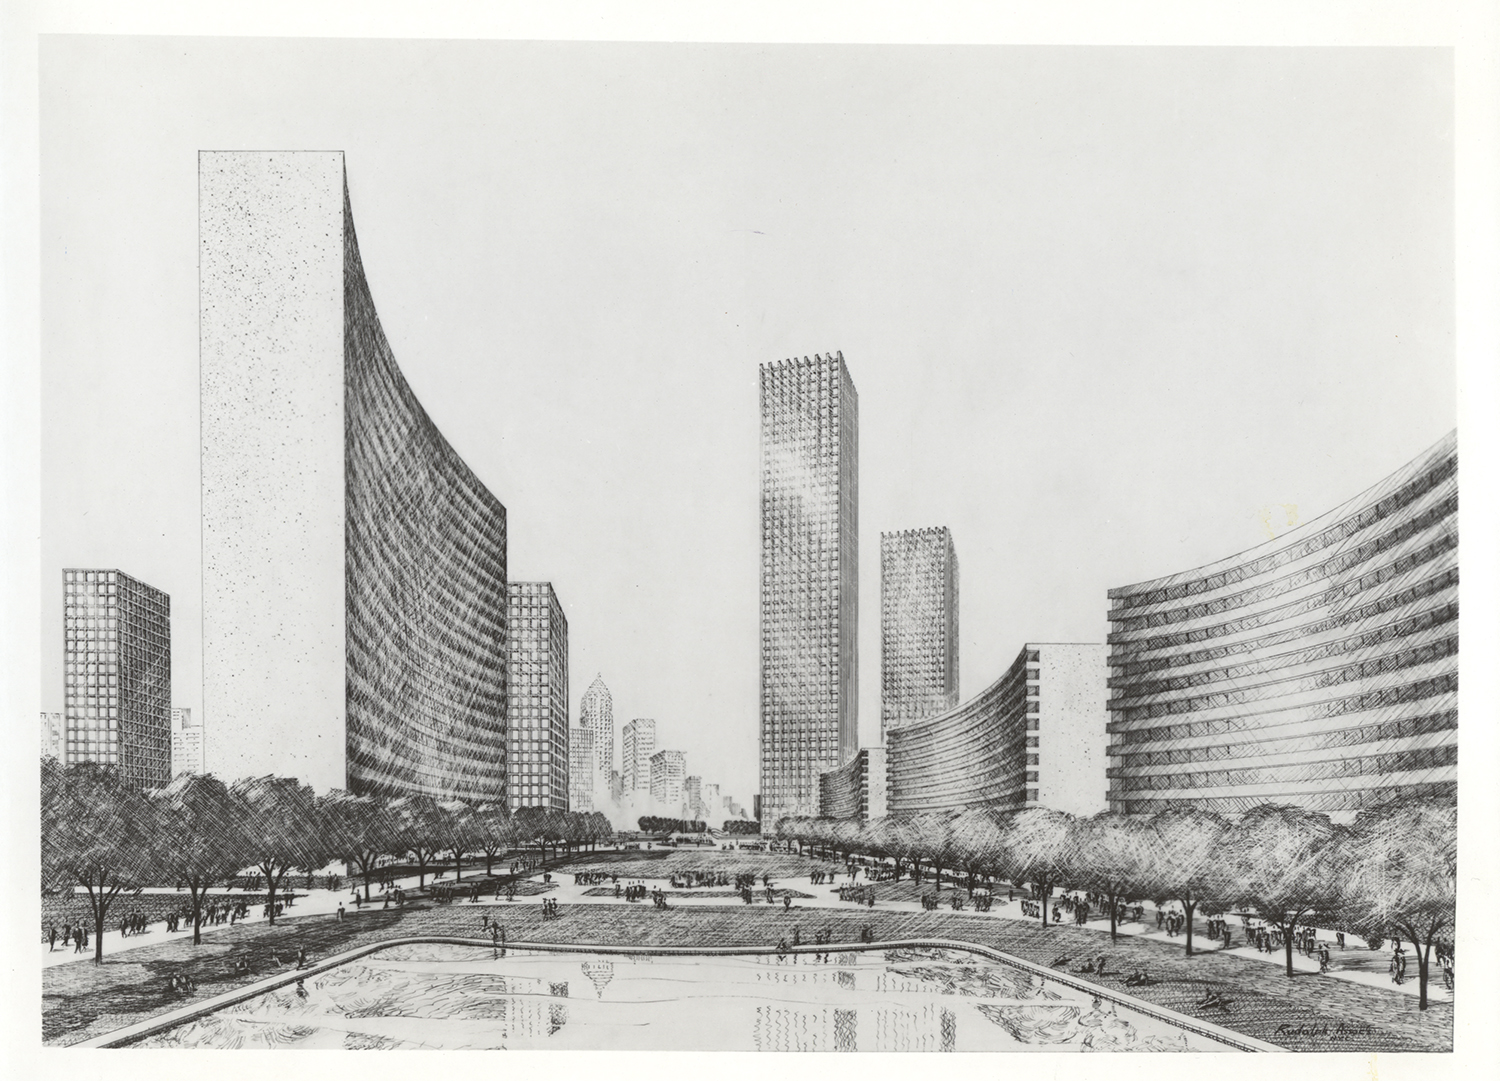 Plan for Penn Central Plaza, 1968. Allegheny Conference on Community Development Photographs, Detre Library & Archives at the Heinz History Center.